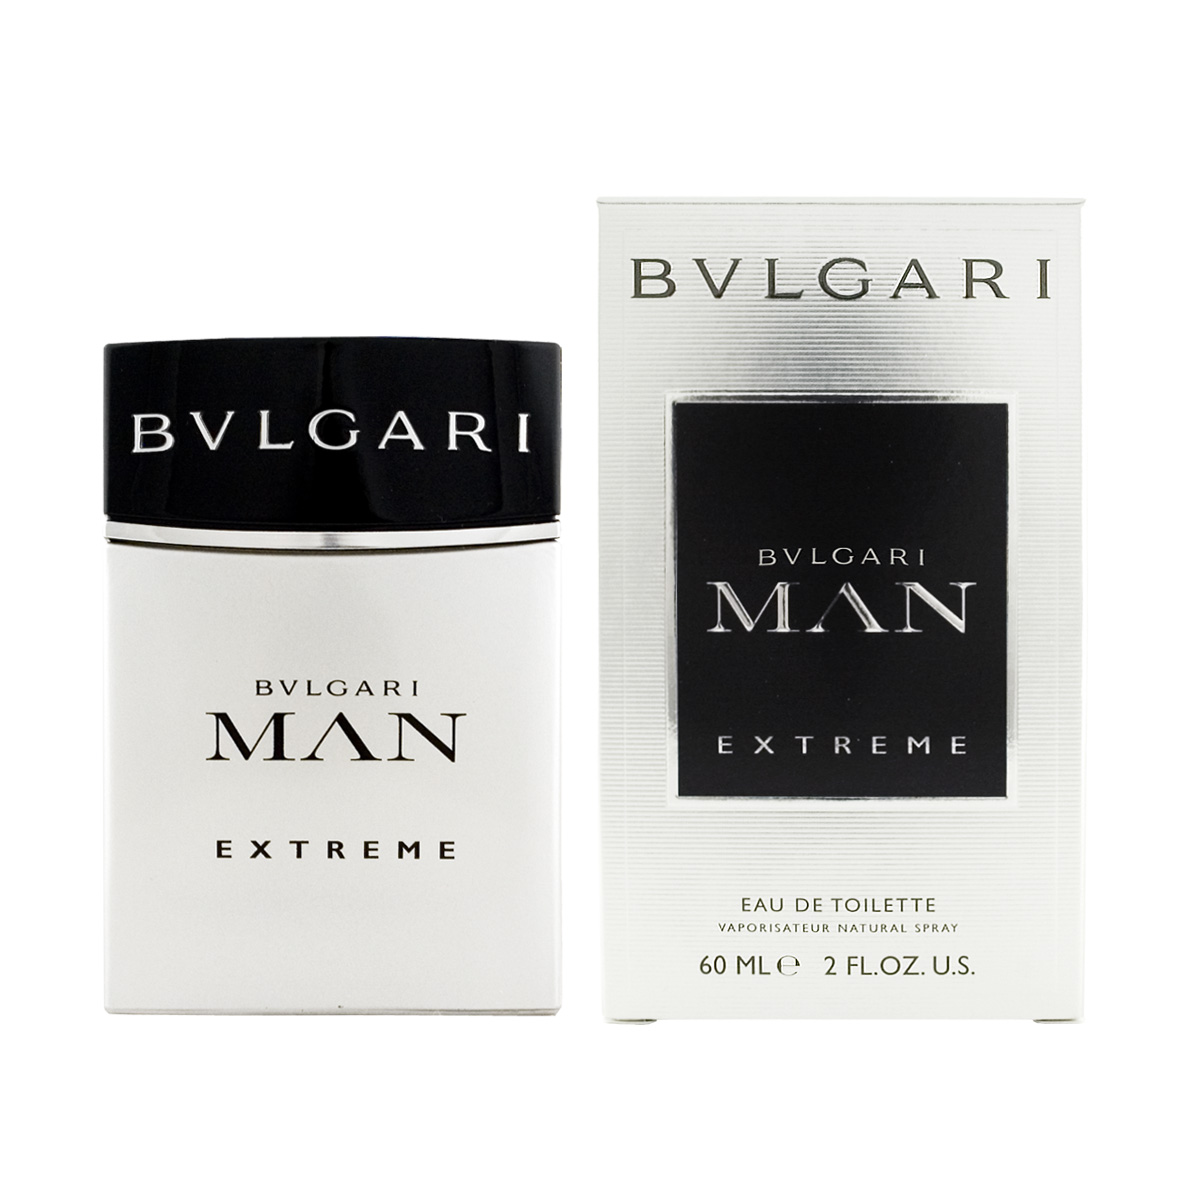 Bvlgari Man Extreme EDT 60 ml M